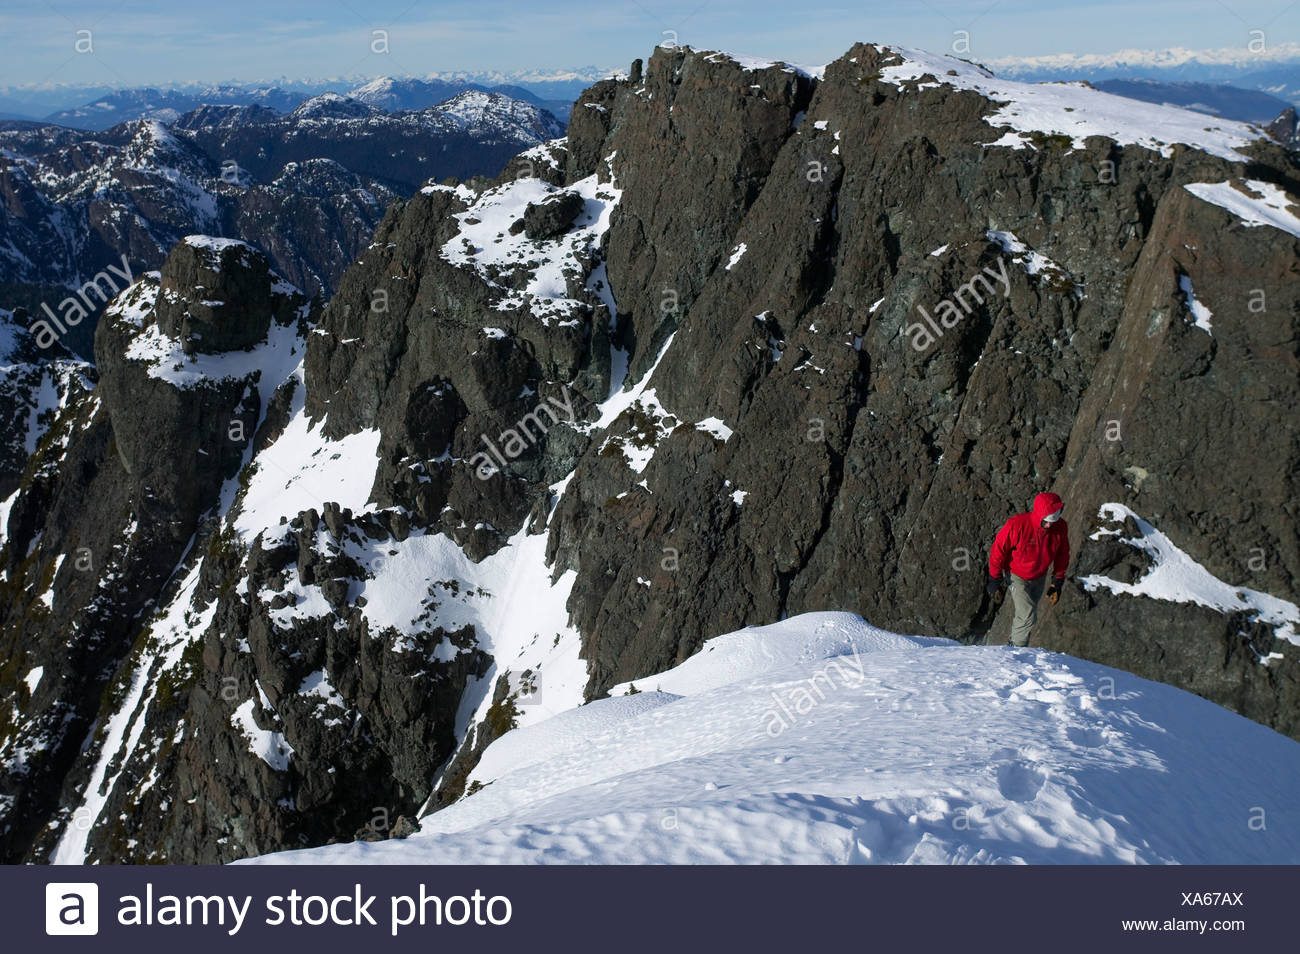 Lone climber ascends to summit snowfield of Mt. Cain looking South towards Campbell River on central Vancouver Island.  British - Stock Image